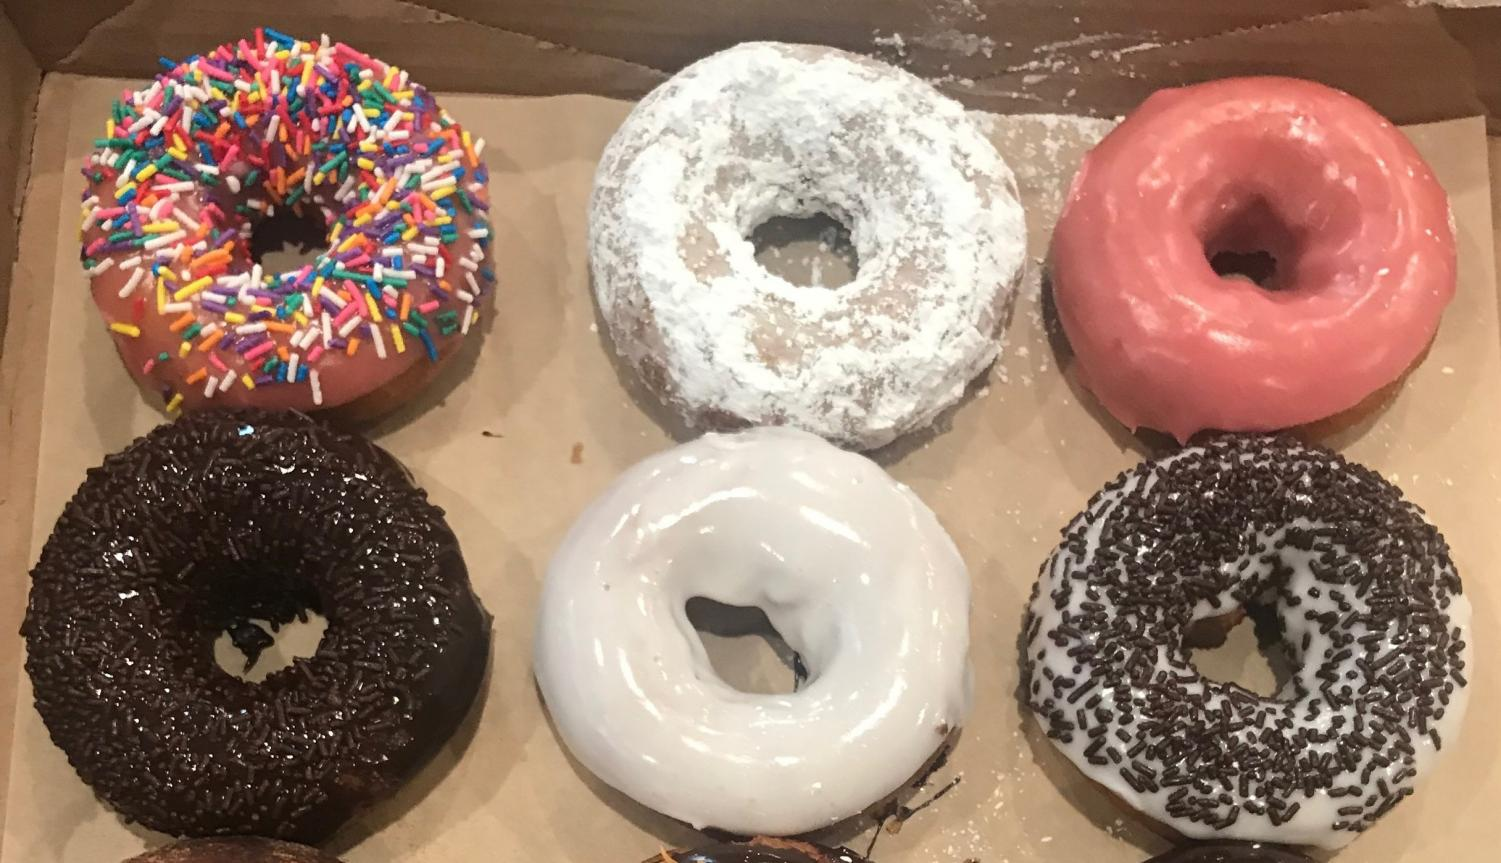 Changing TIdes Cafe offers a new spot in downtown Newburyport to sample homemade donuts and enjoy their coffee bar.